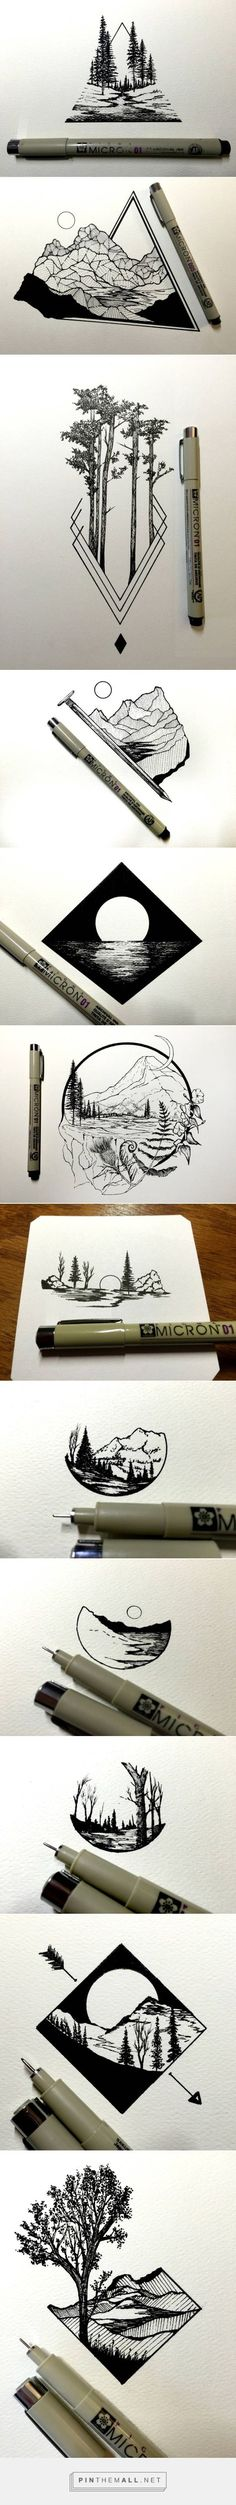 Daily Drawings by Derek Myers – Fubiz Media - created via https://pinthemall.net